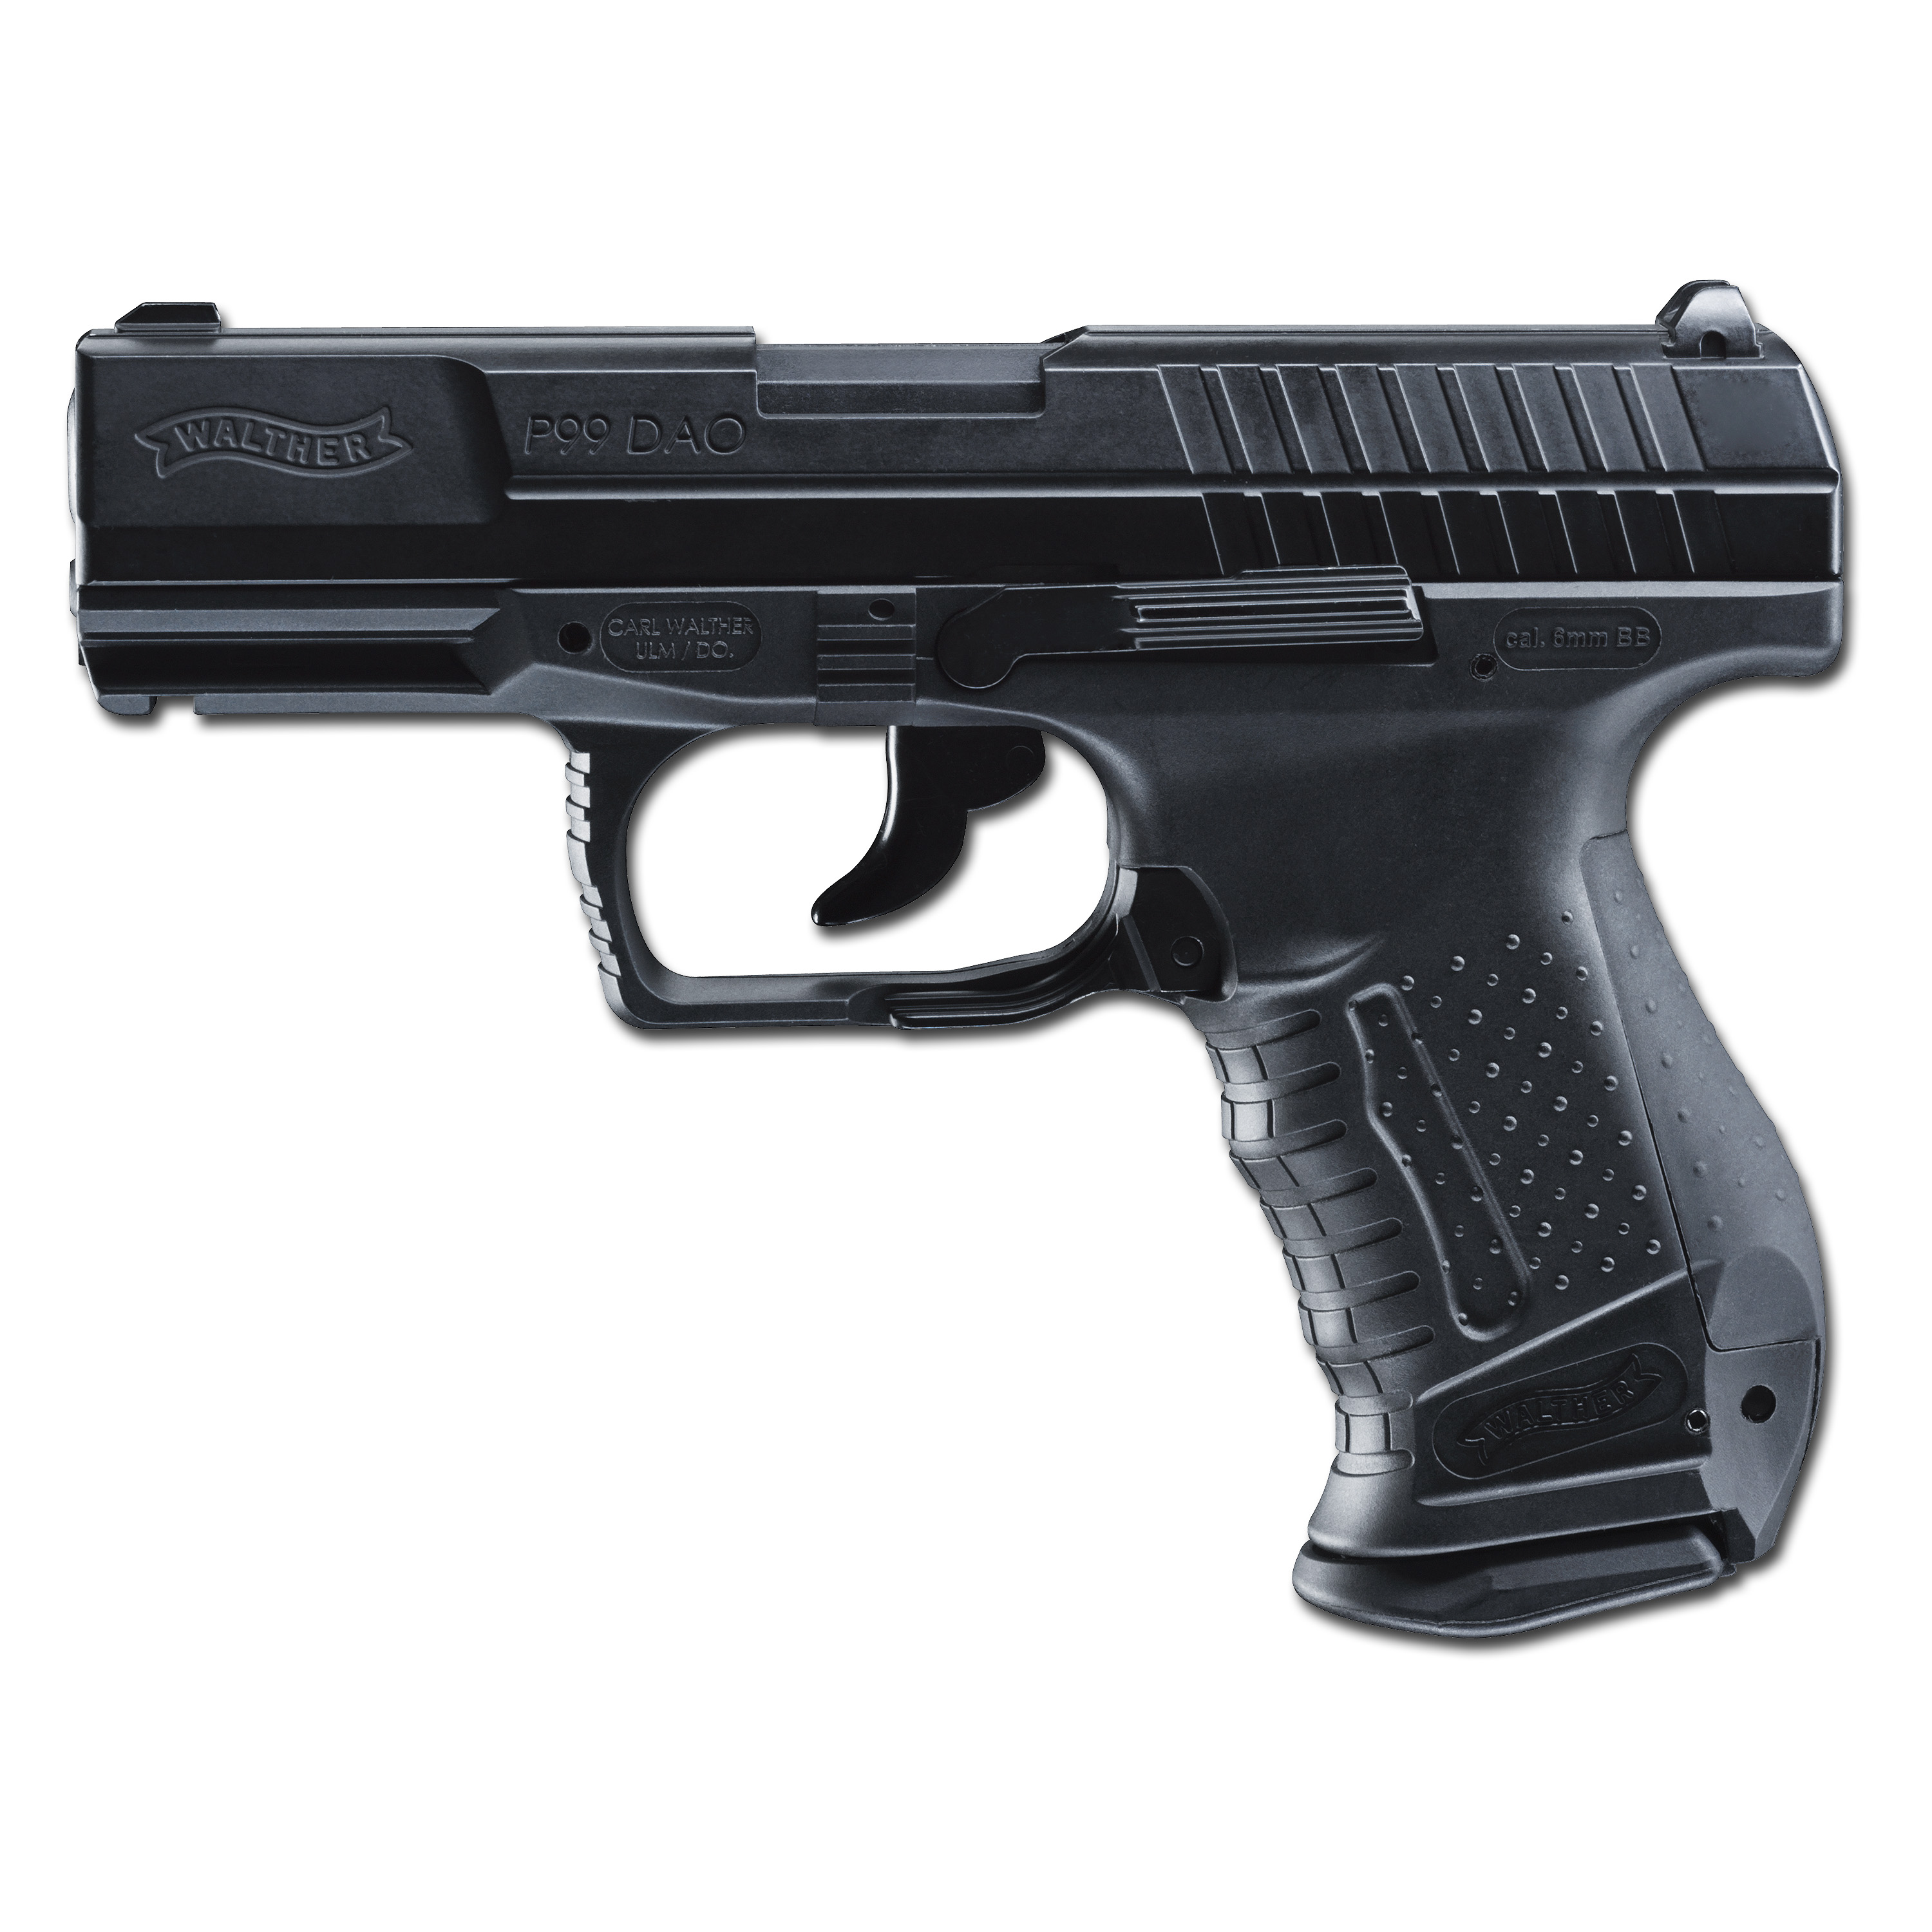 Pistole Softair Walther P99 DAO CO2 Blowback